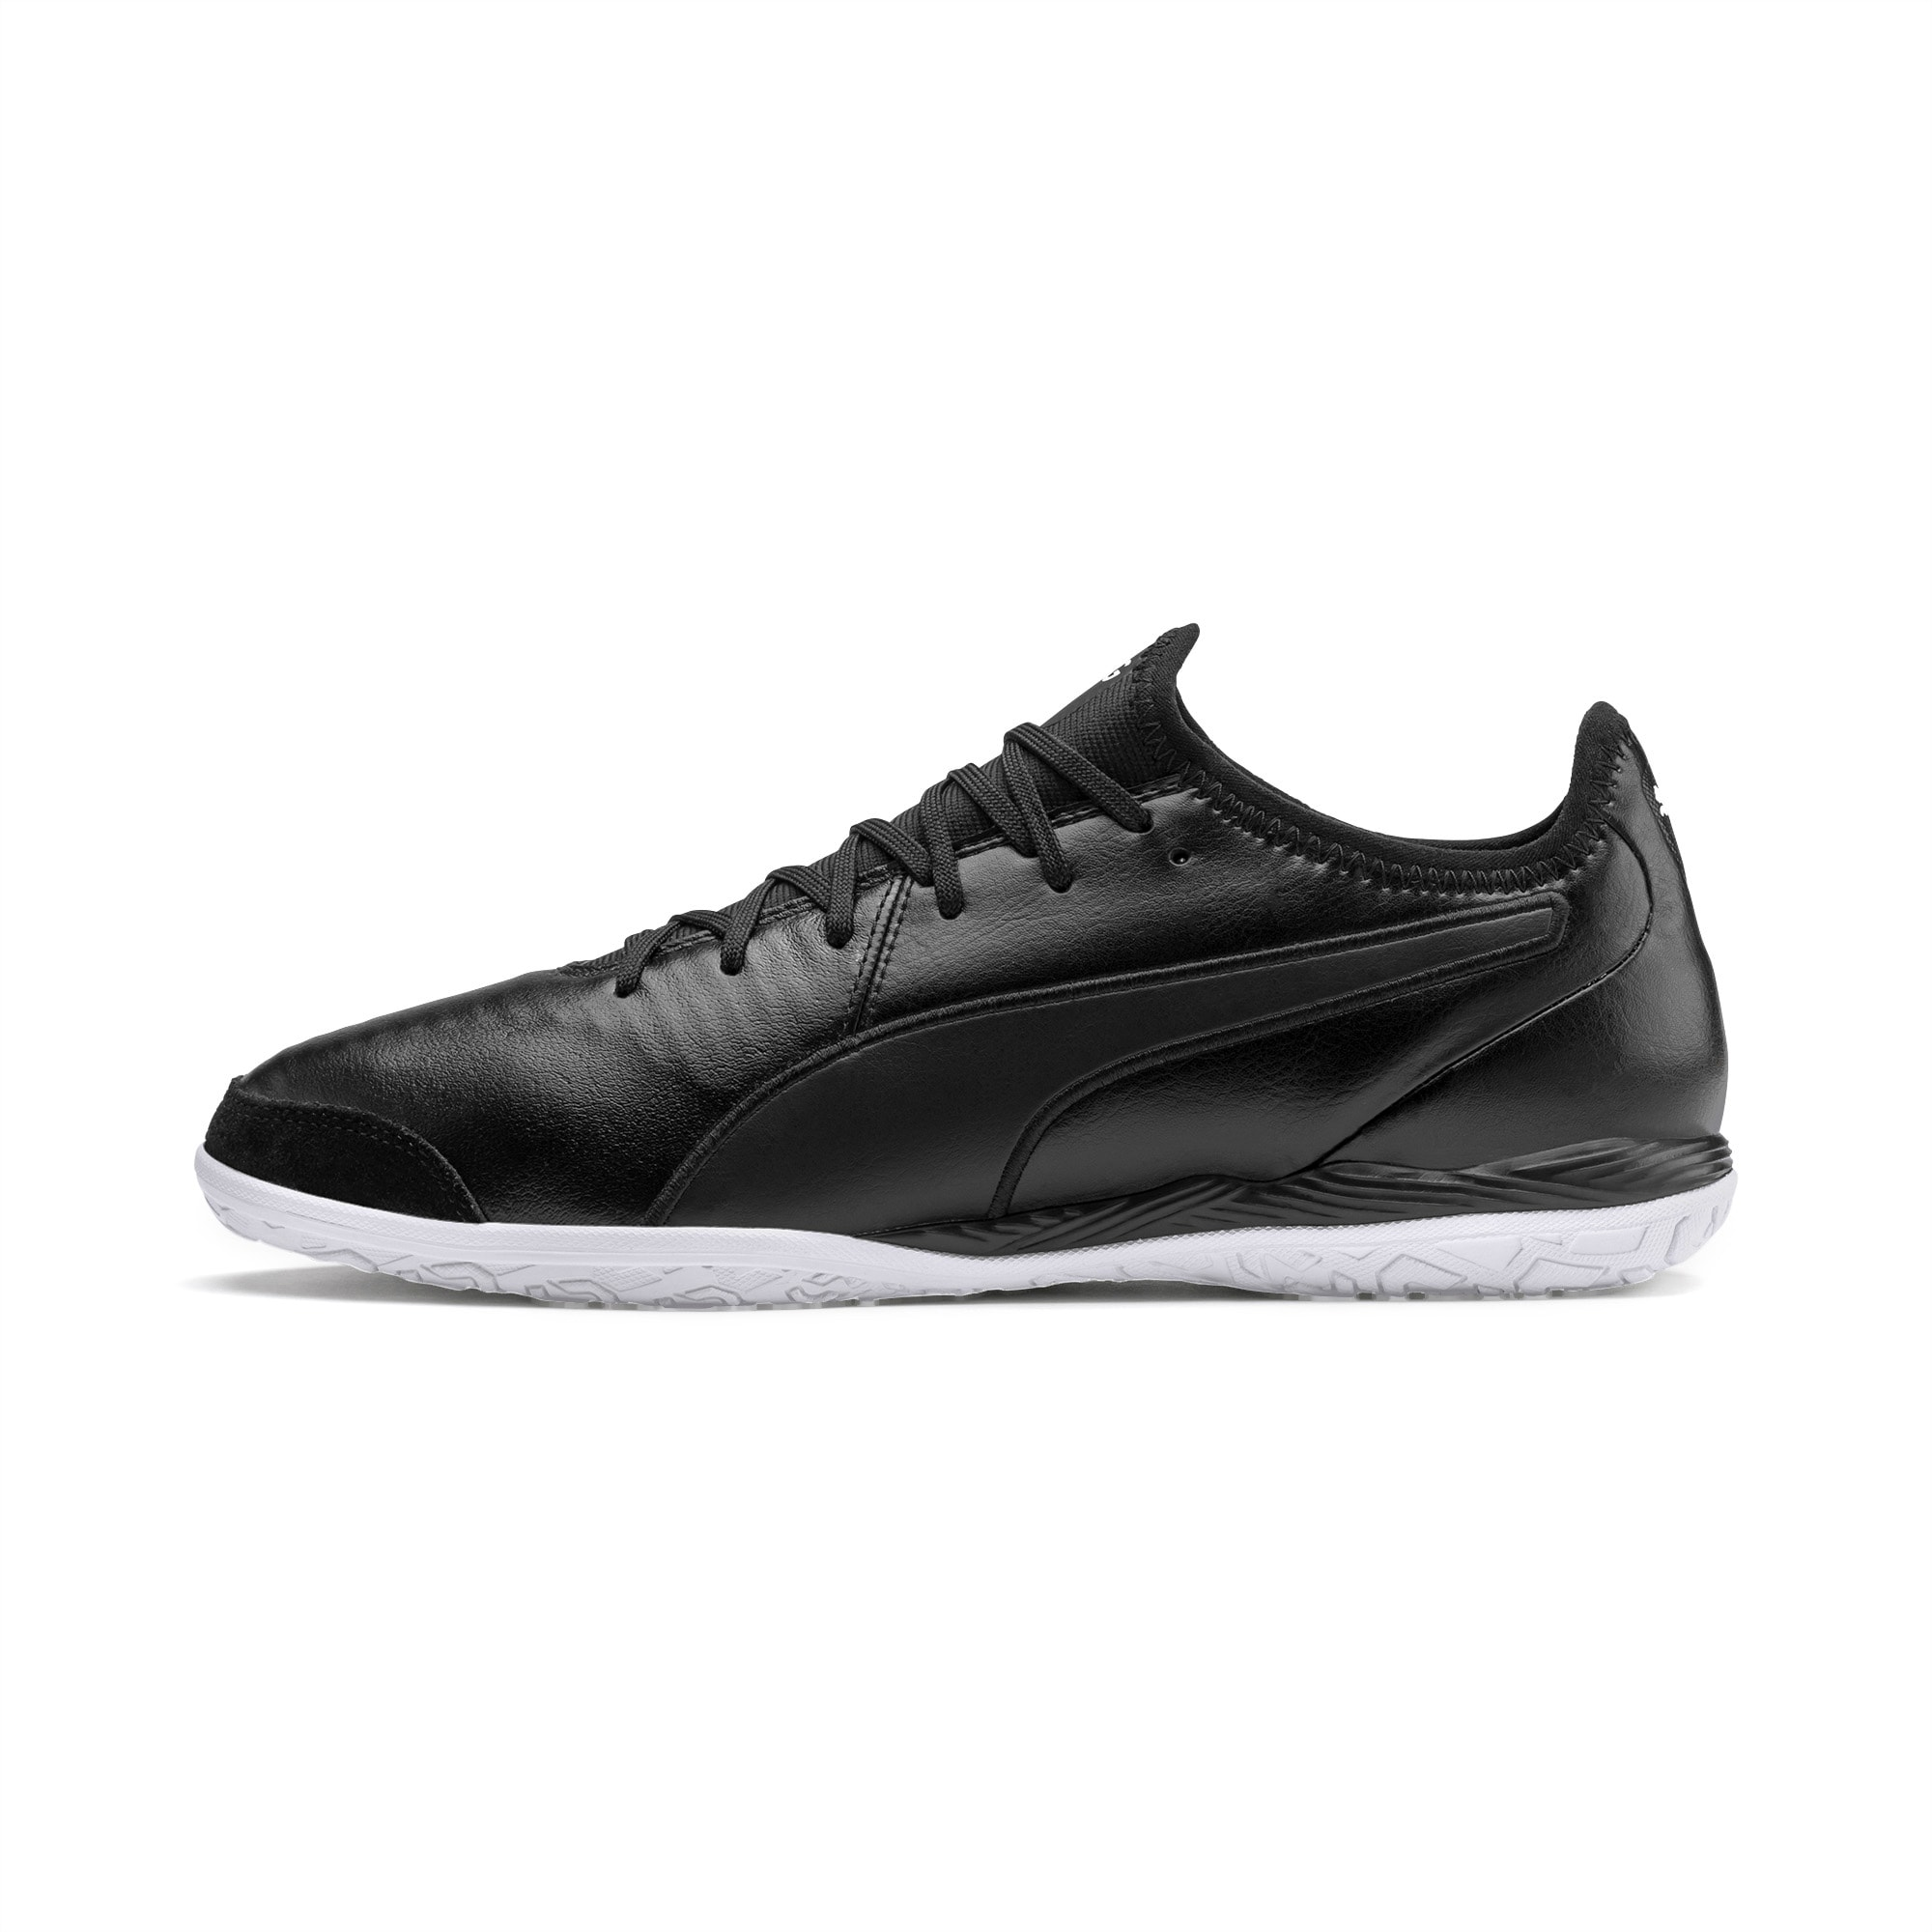 Sinis pulse Taccuino  King Pro IT Soccer Shoes | PUMA US